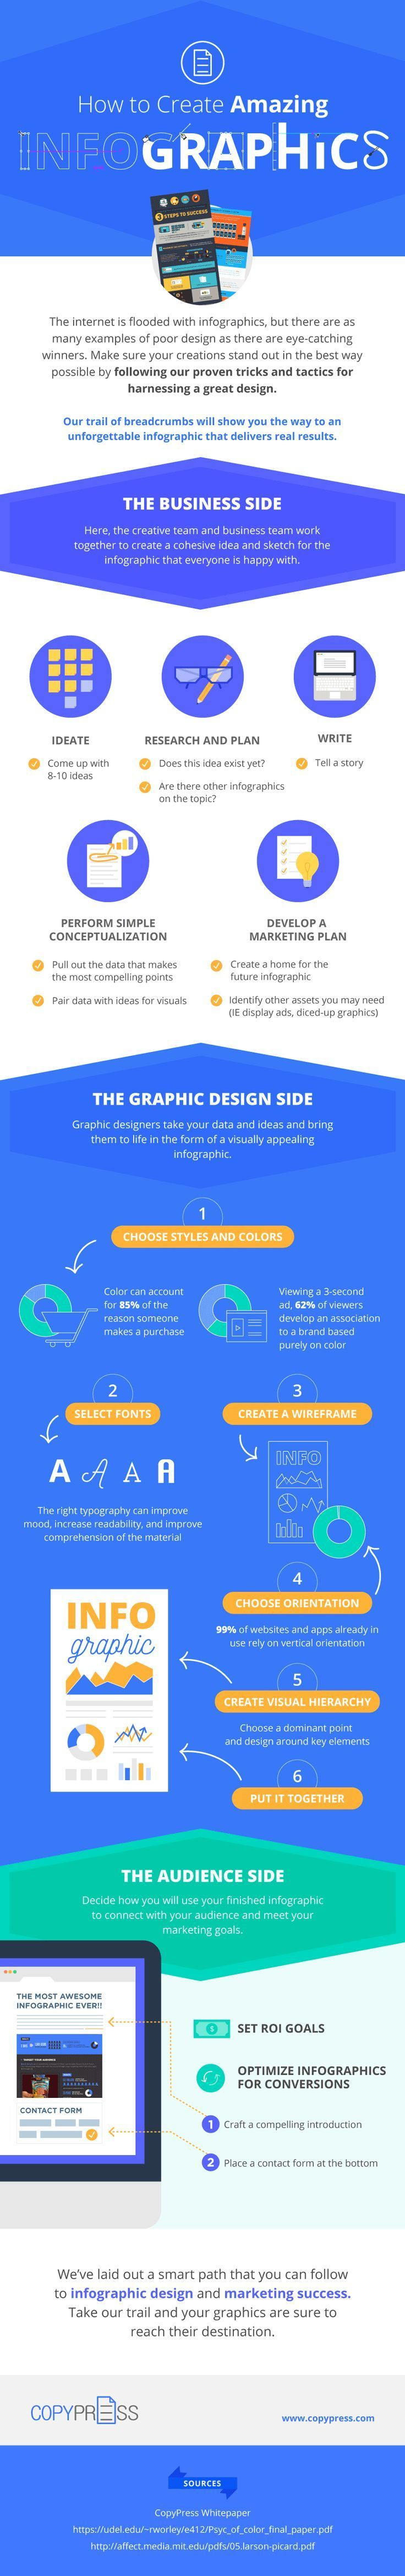 Wondering how to create an infographic? Here are simple steps to a great design! Click through to blog for more tips.